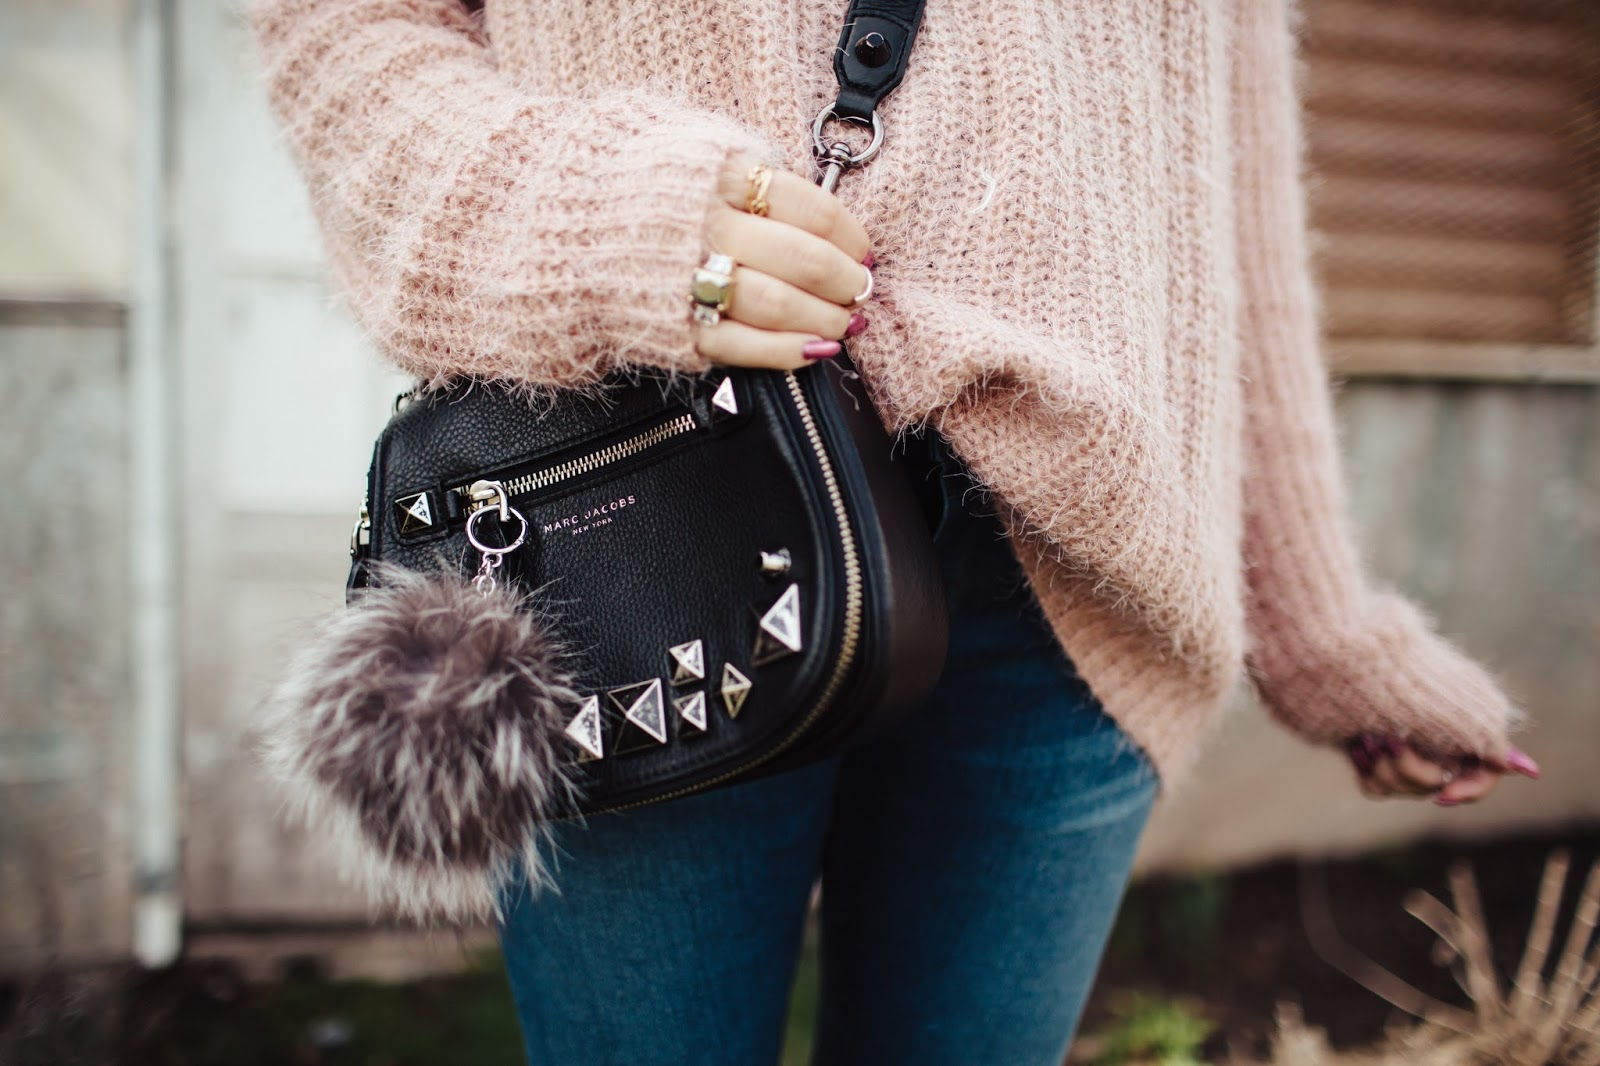 Marc Jacob Bag, Black Bag, Studded Purse